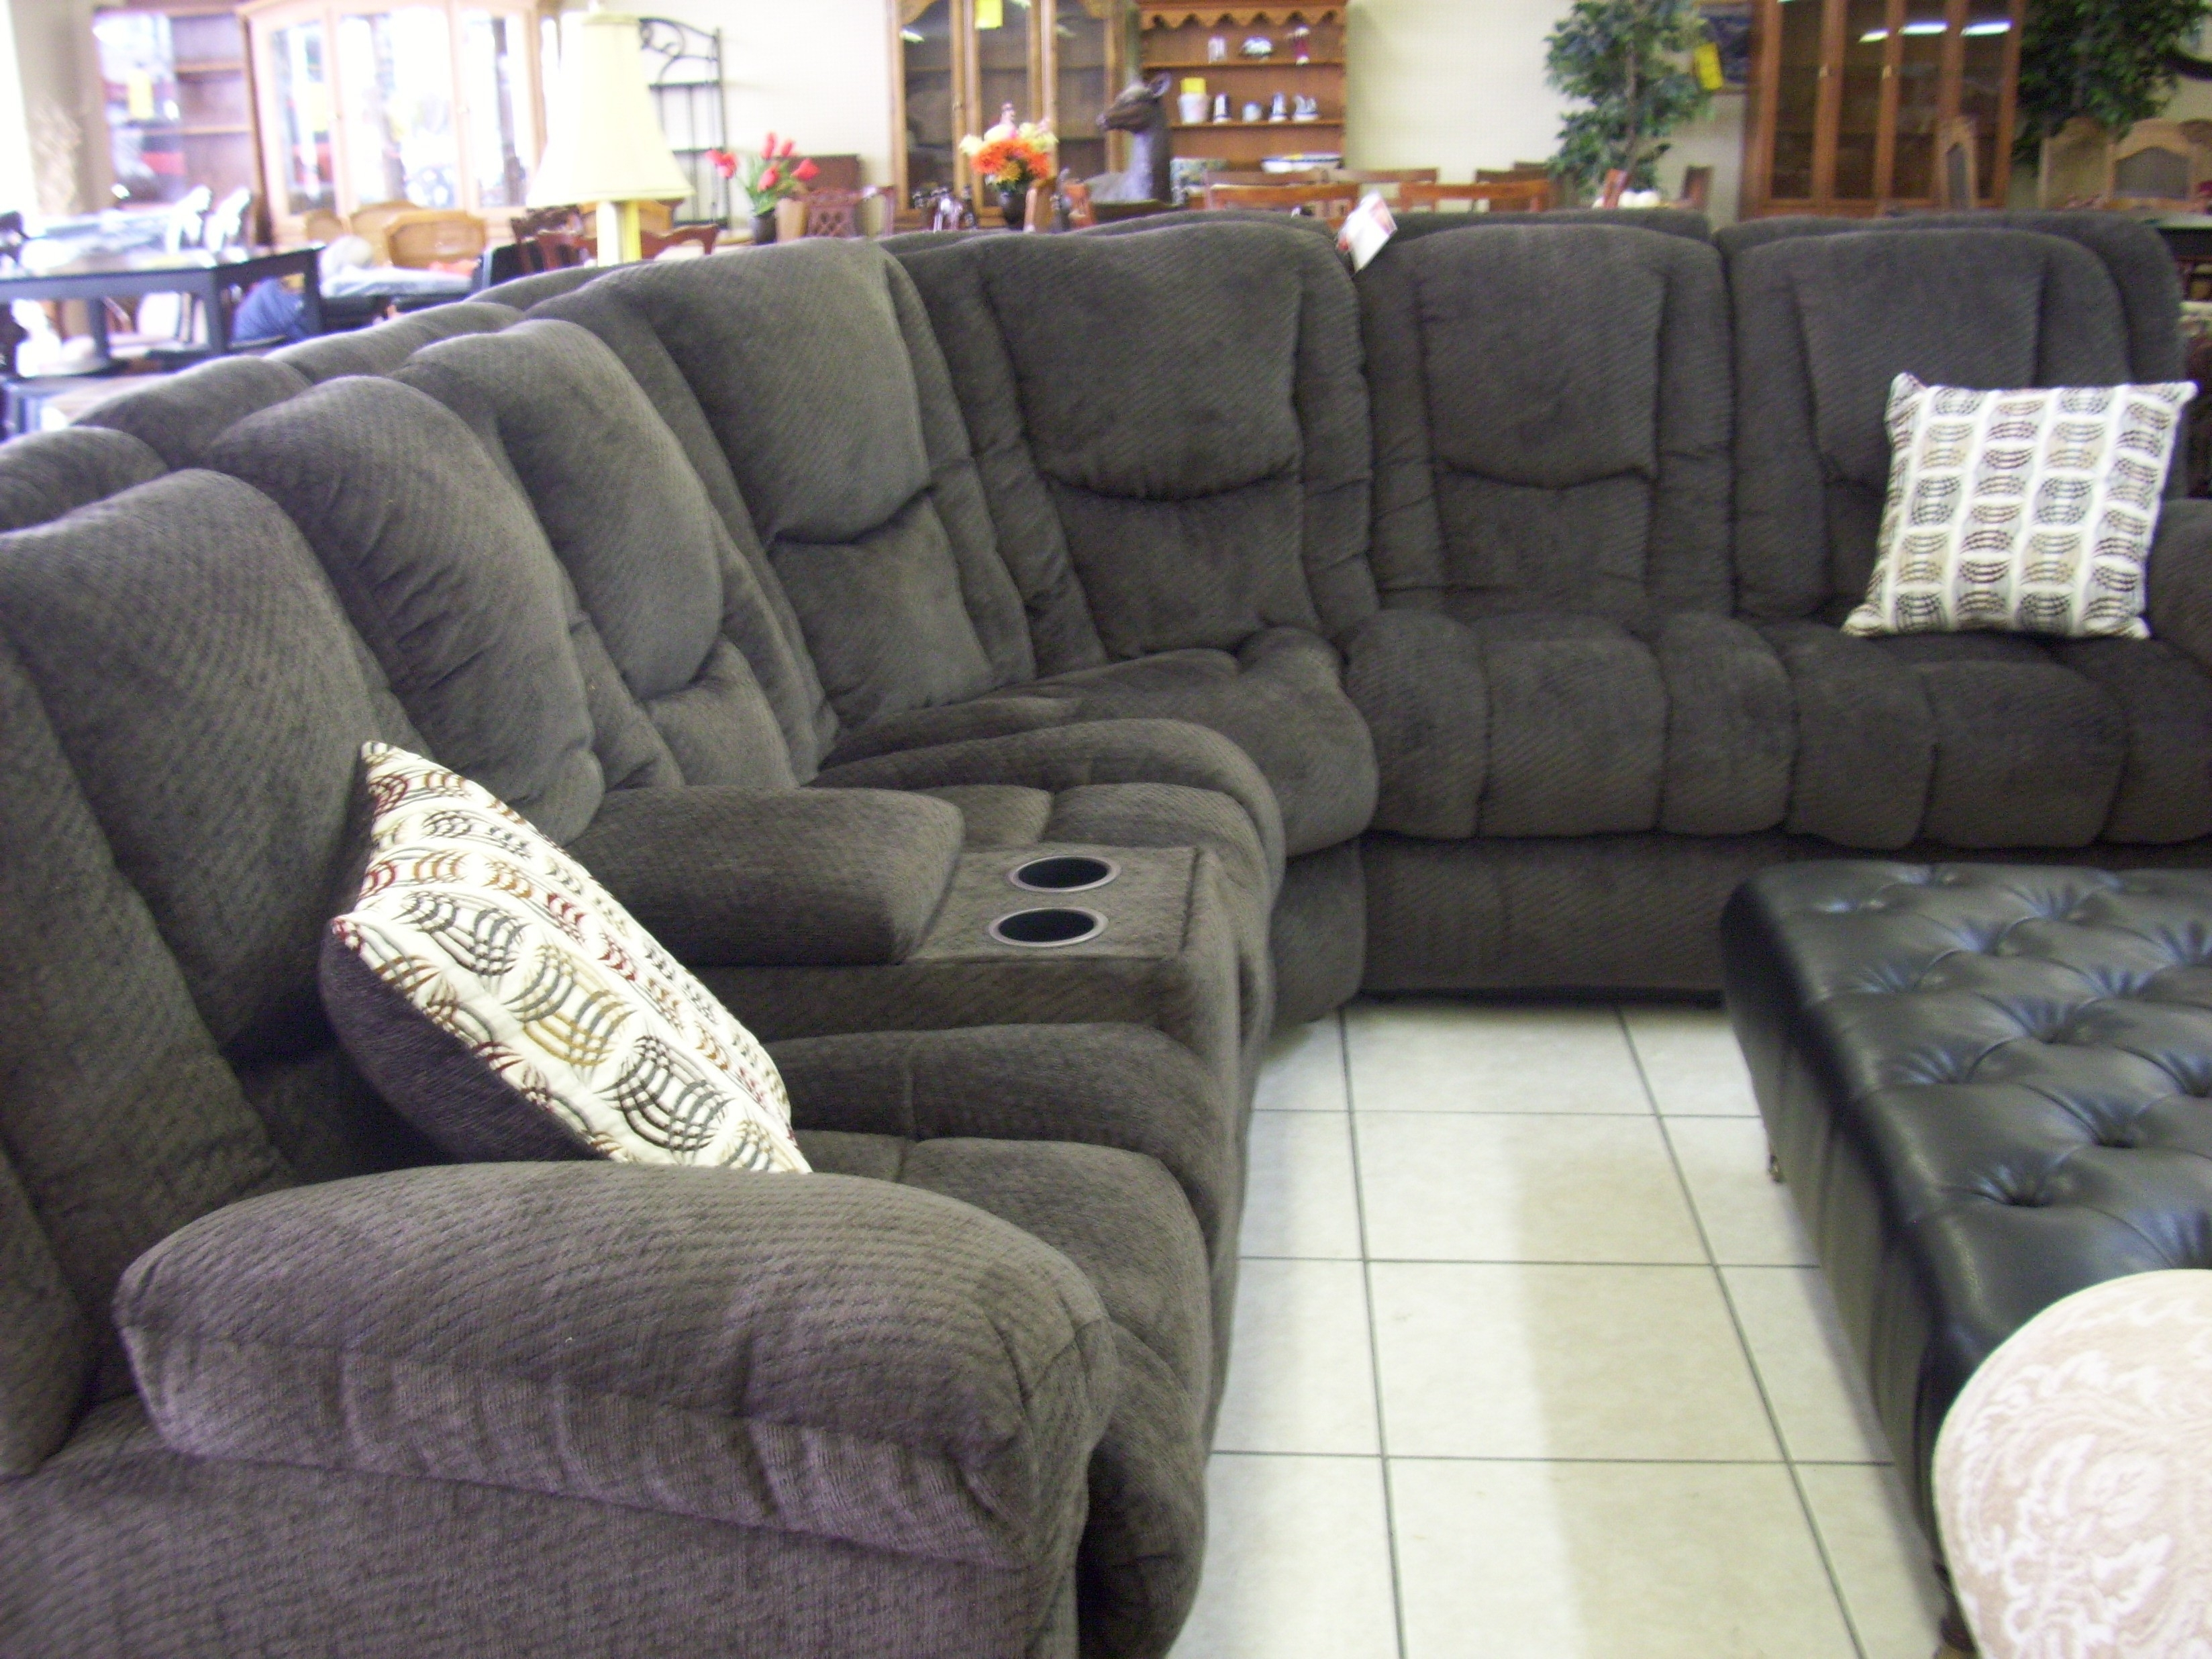 Best Of Craigslist Sectional Sofa – Buildsimplehome Intended For Best And Newest Sectional Sofas At Craigslist (View 3 of 15)